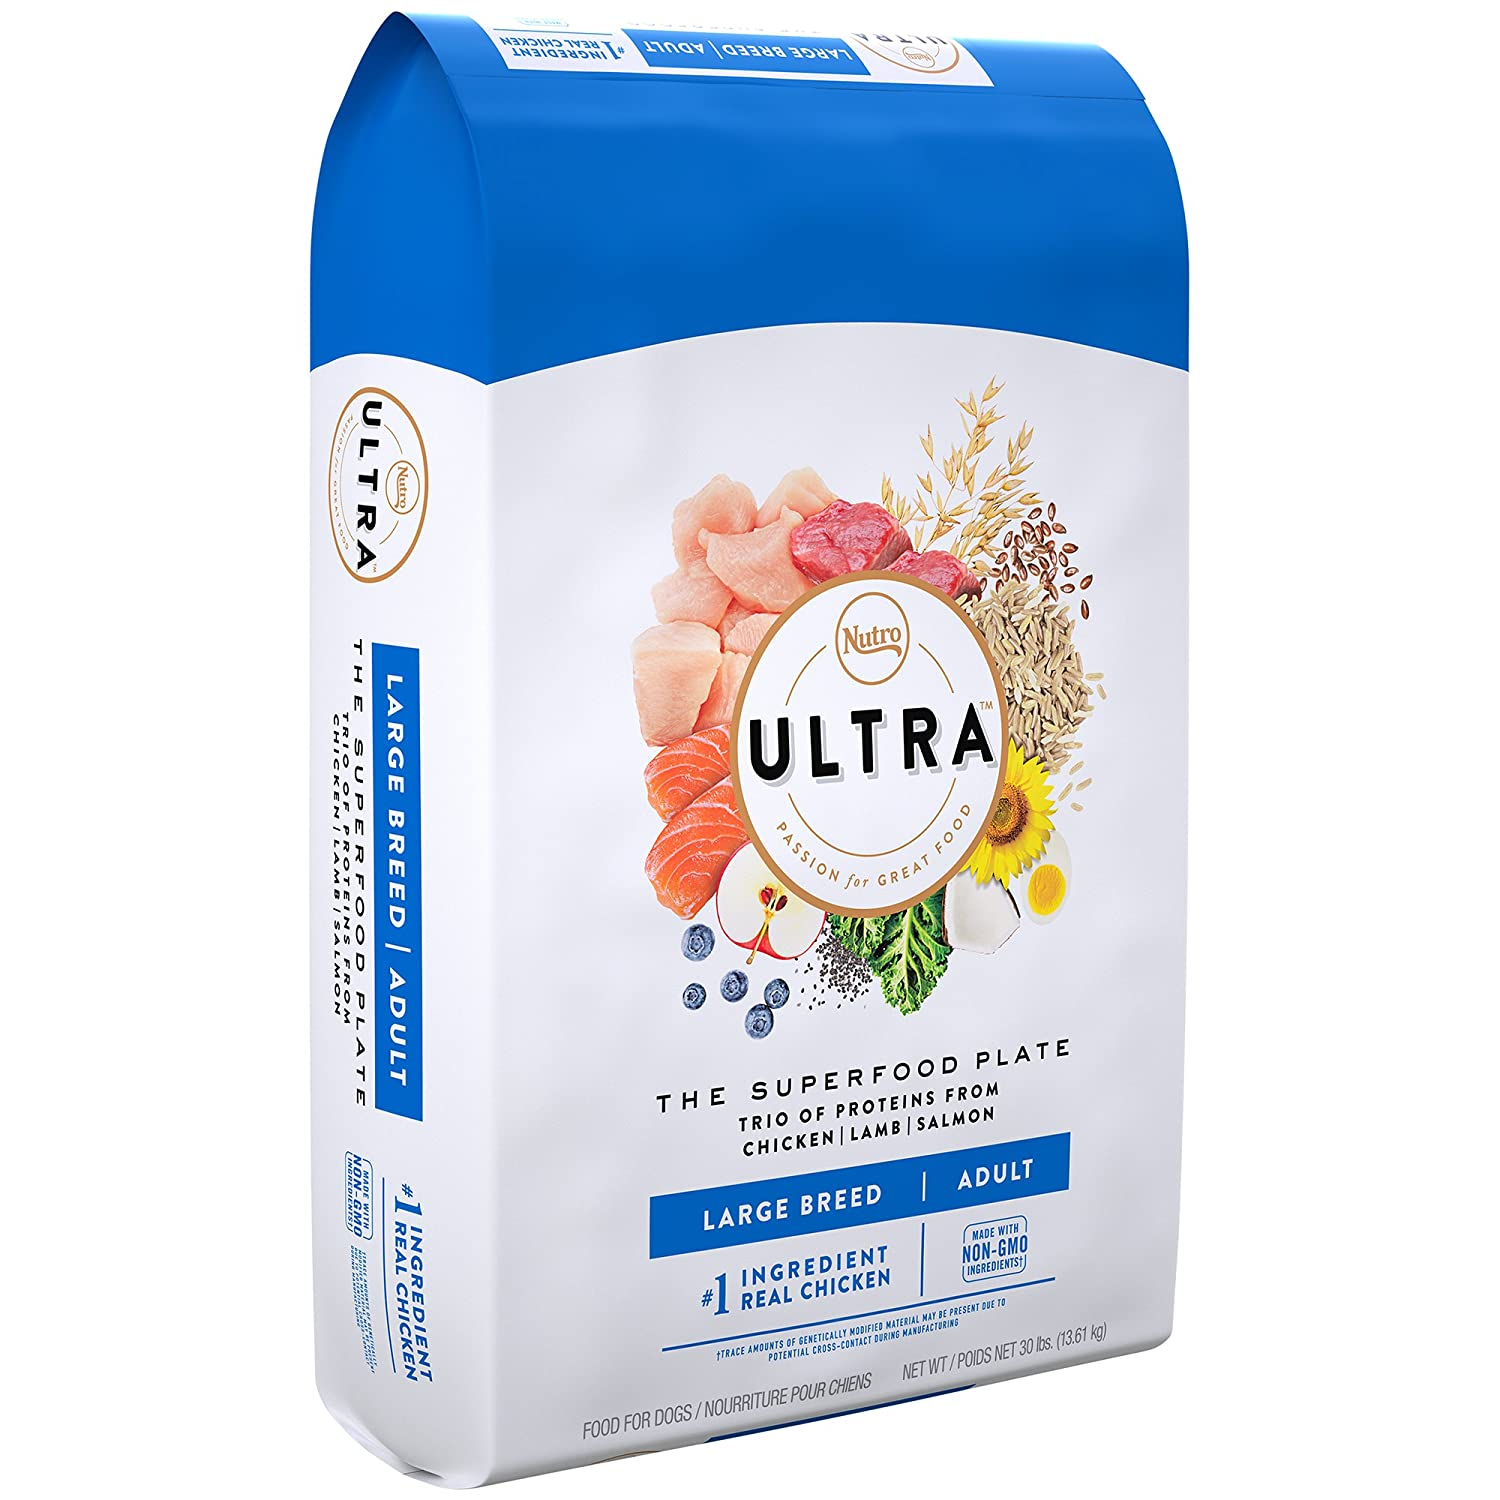 3. Nutro Ultra Large Breed Adult Dry Dog Food